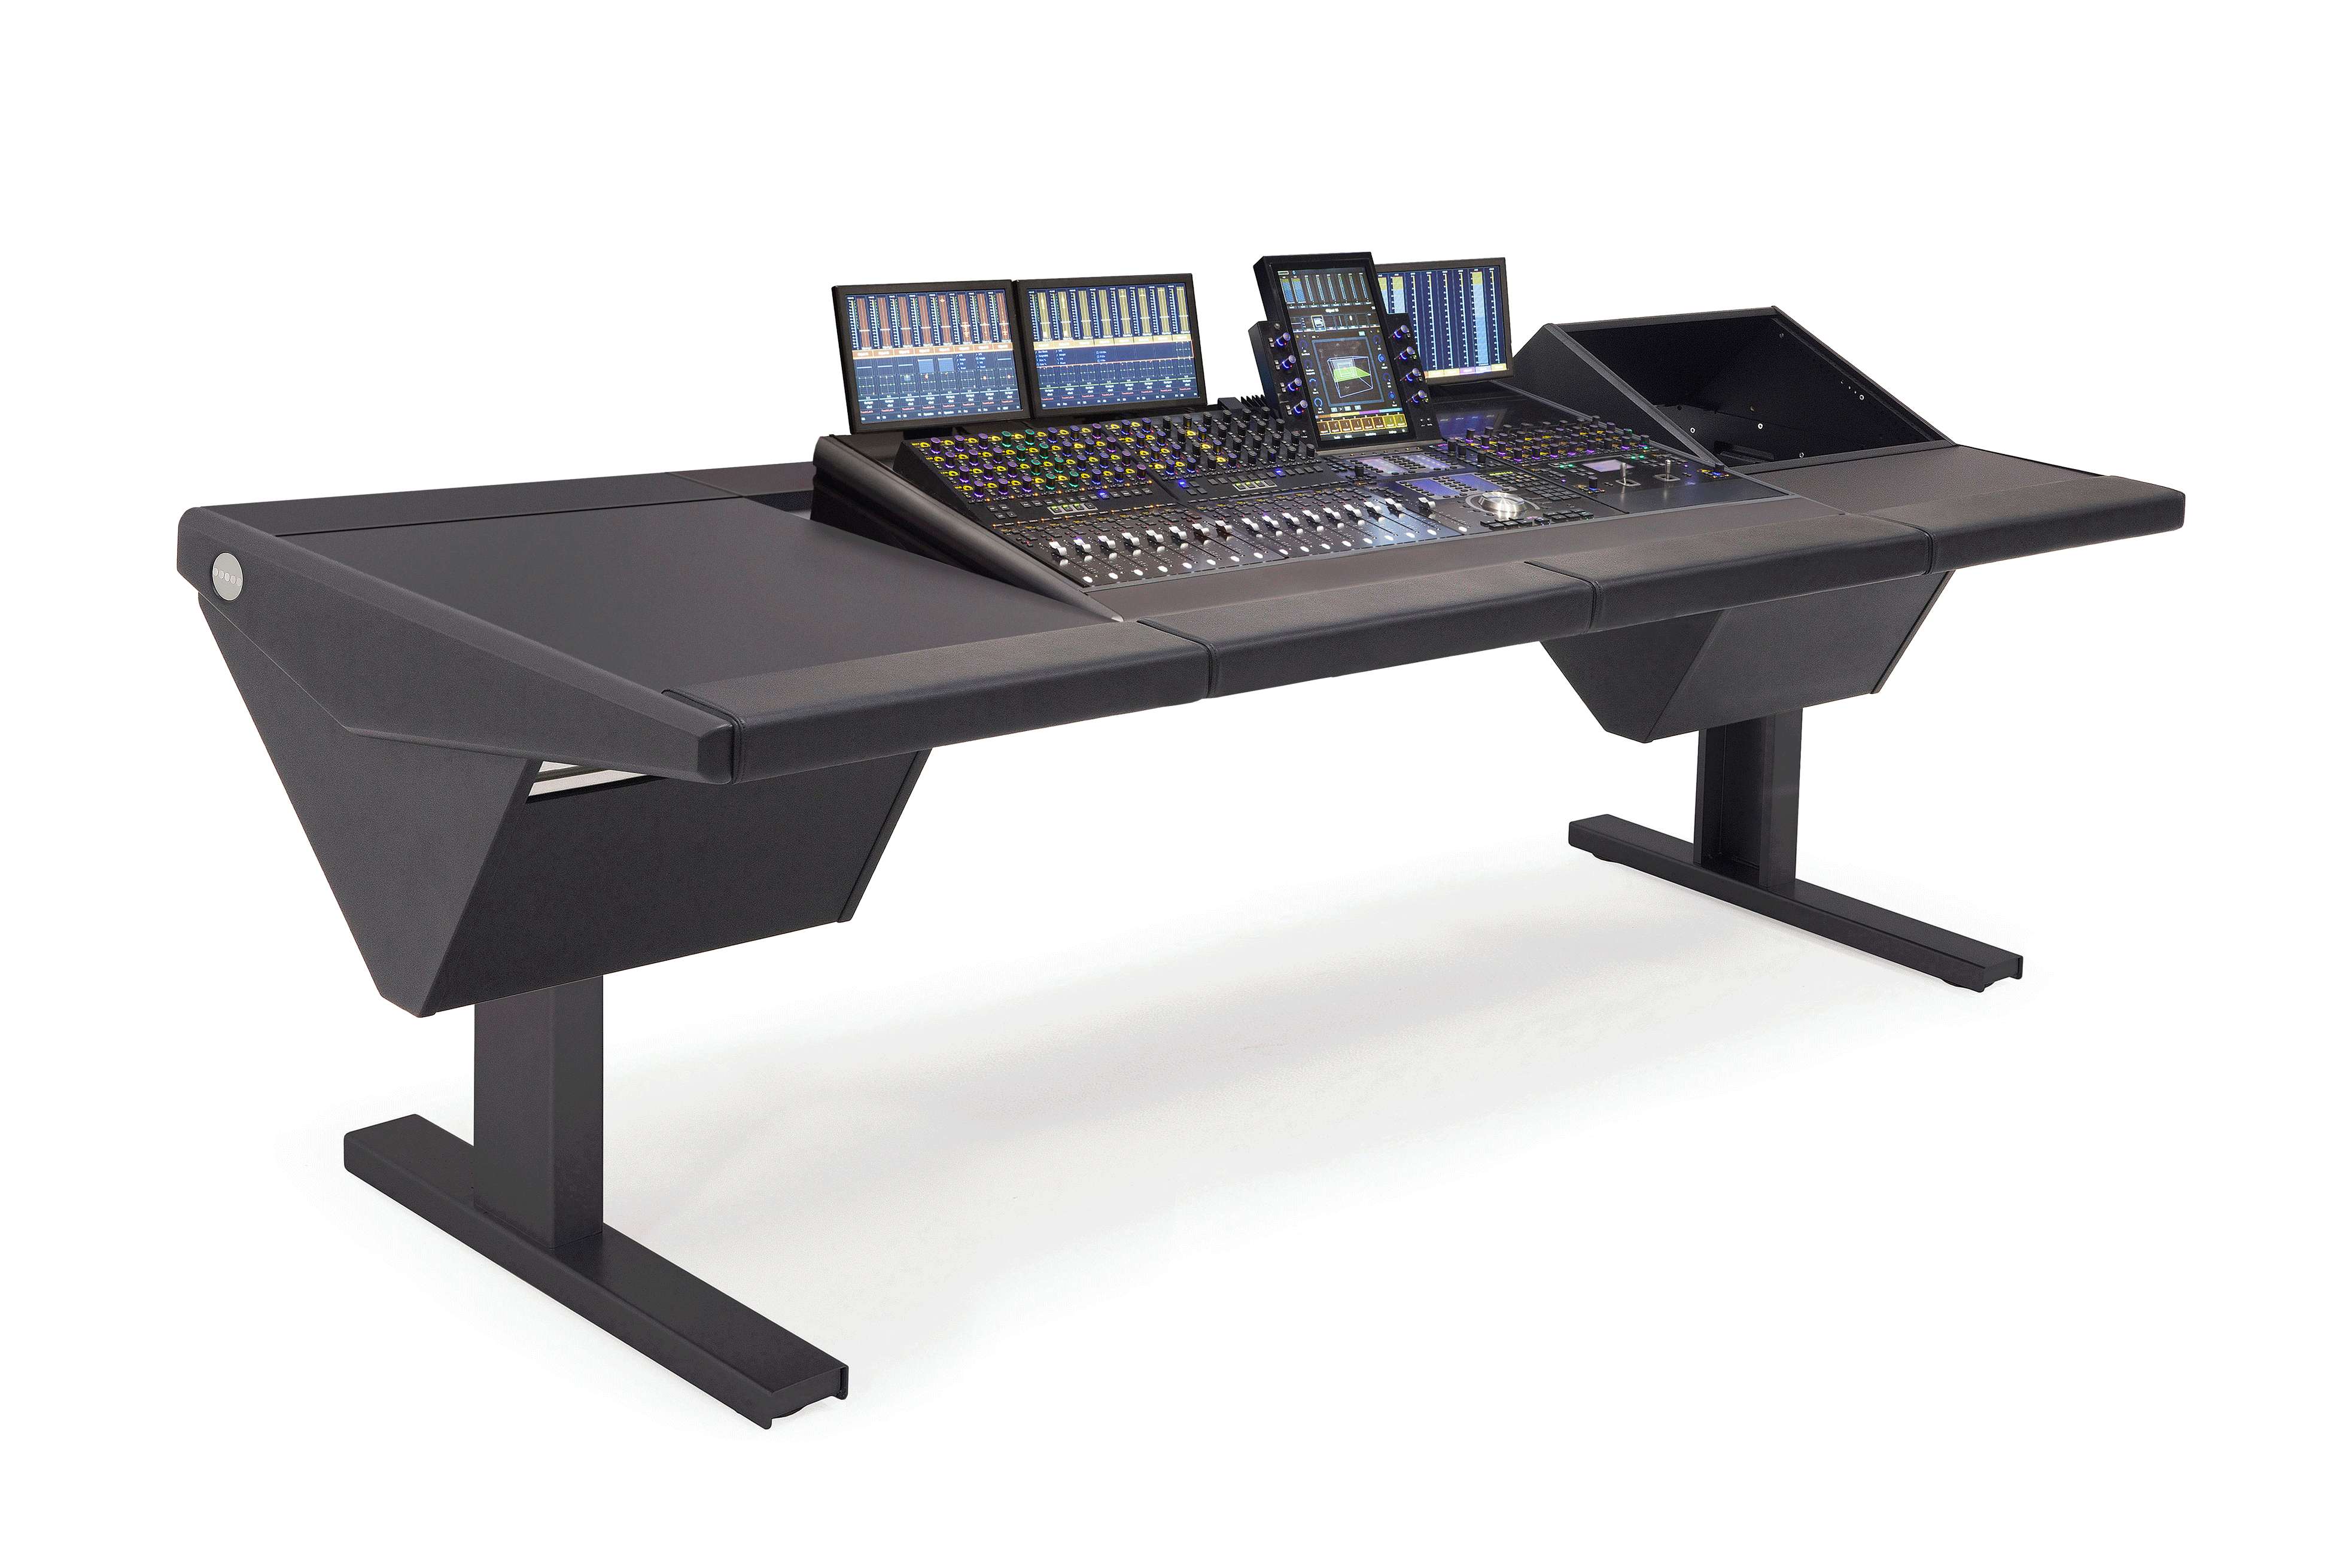 S4 - 4 Foot Wide Base System with Desk (L) and Rack (R)